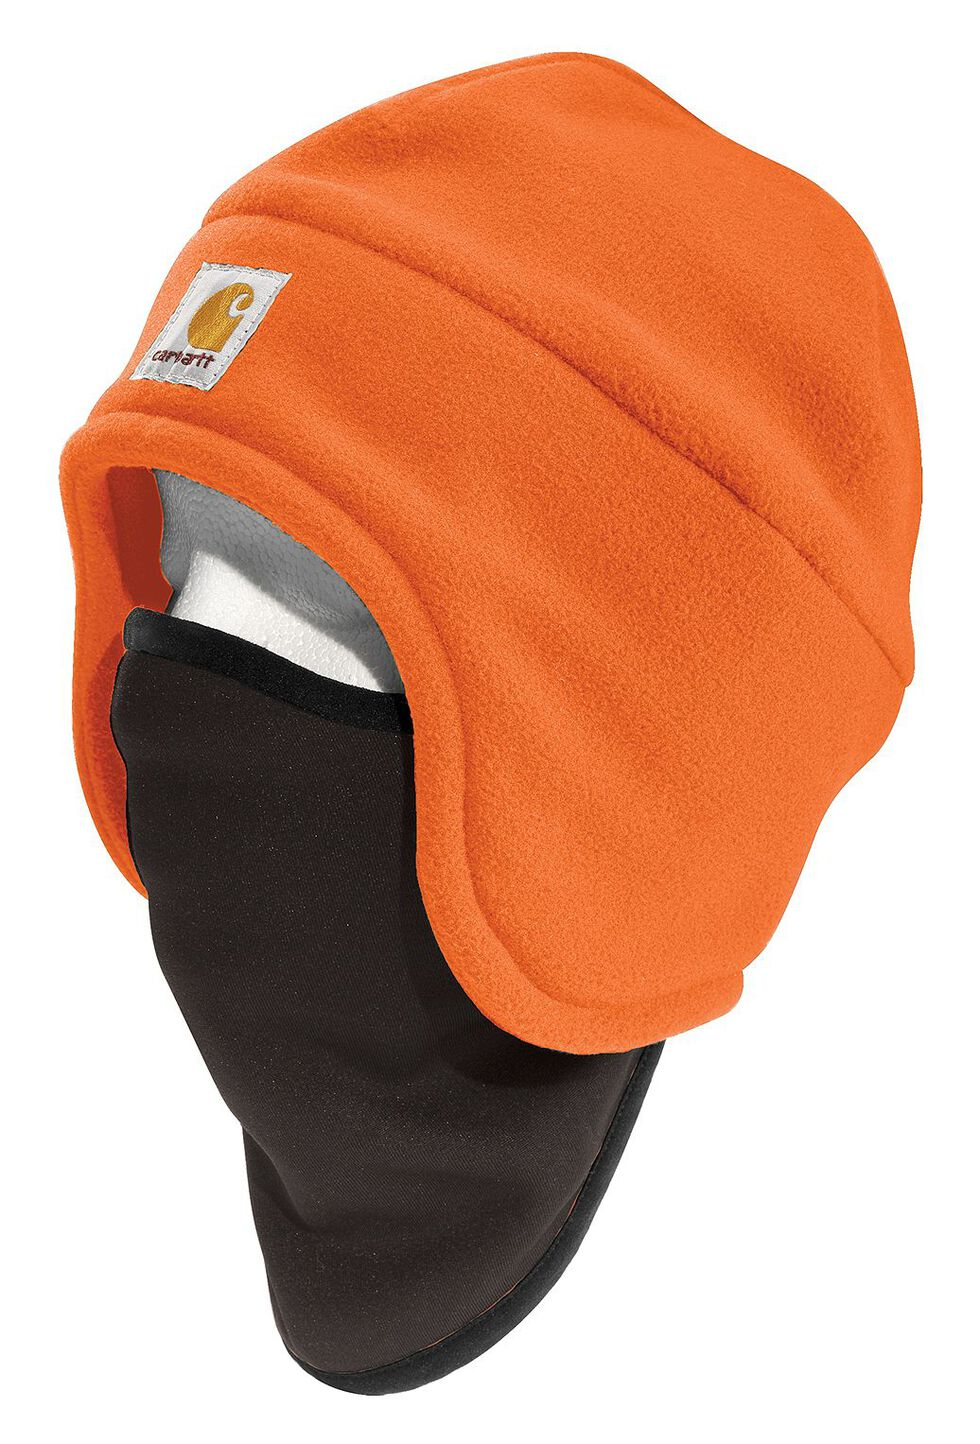 Carhartt High-Visibility Color Enhanced 2-in-1 Headwear, , hi-res